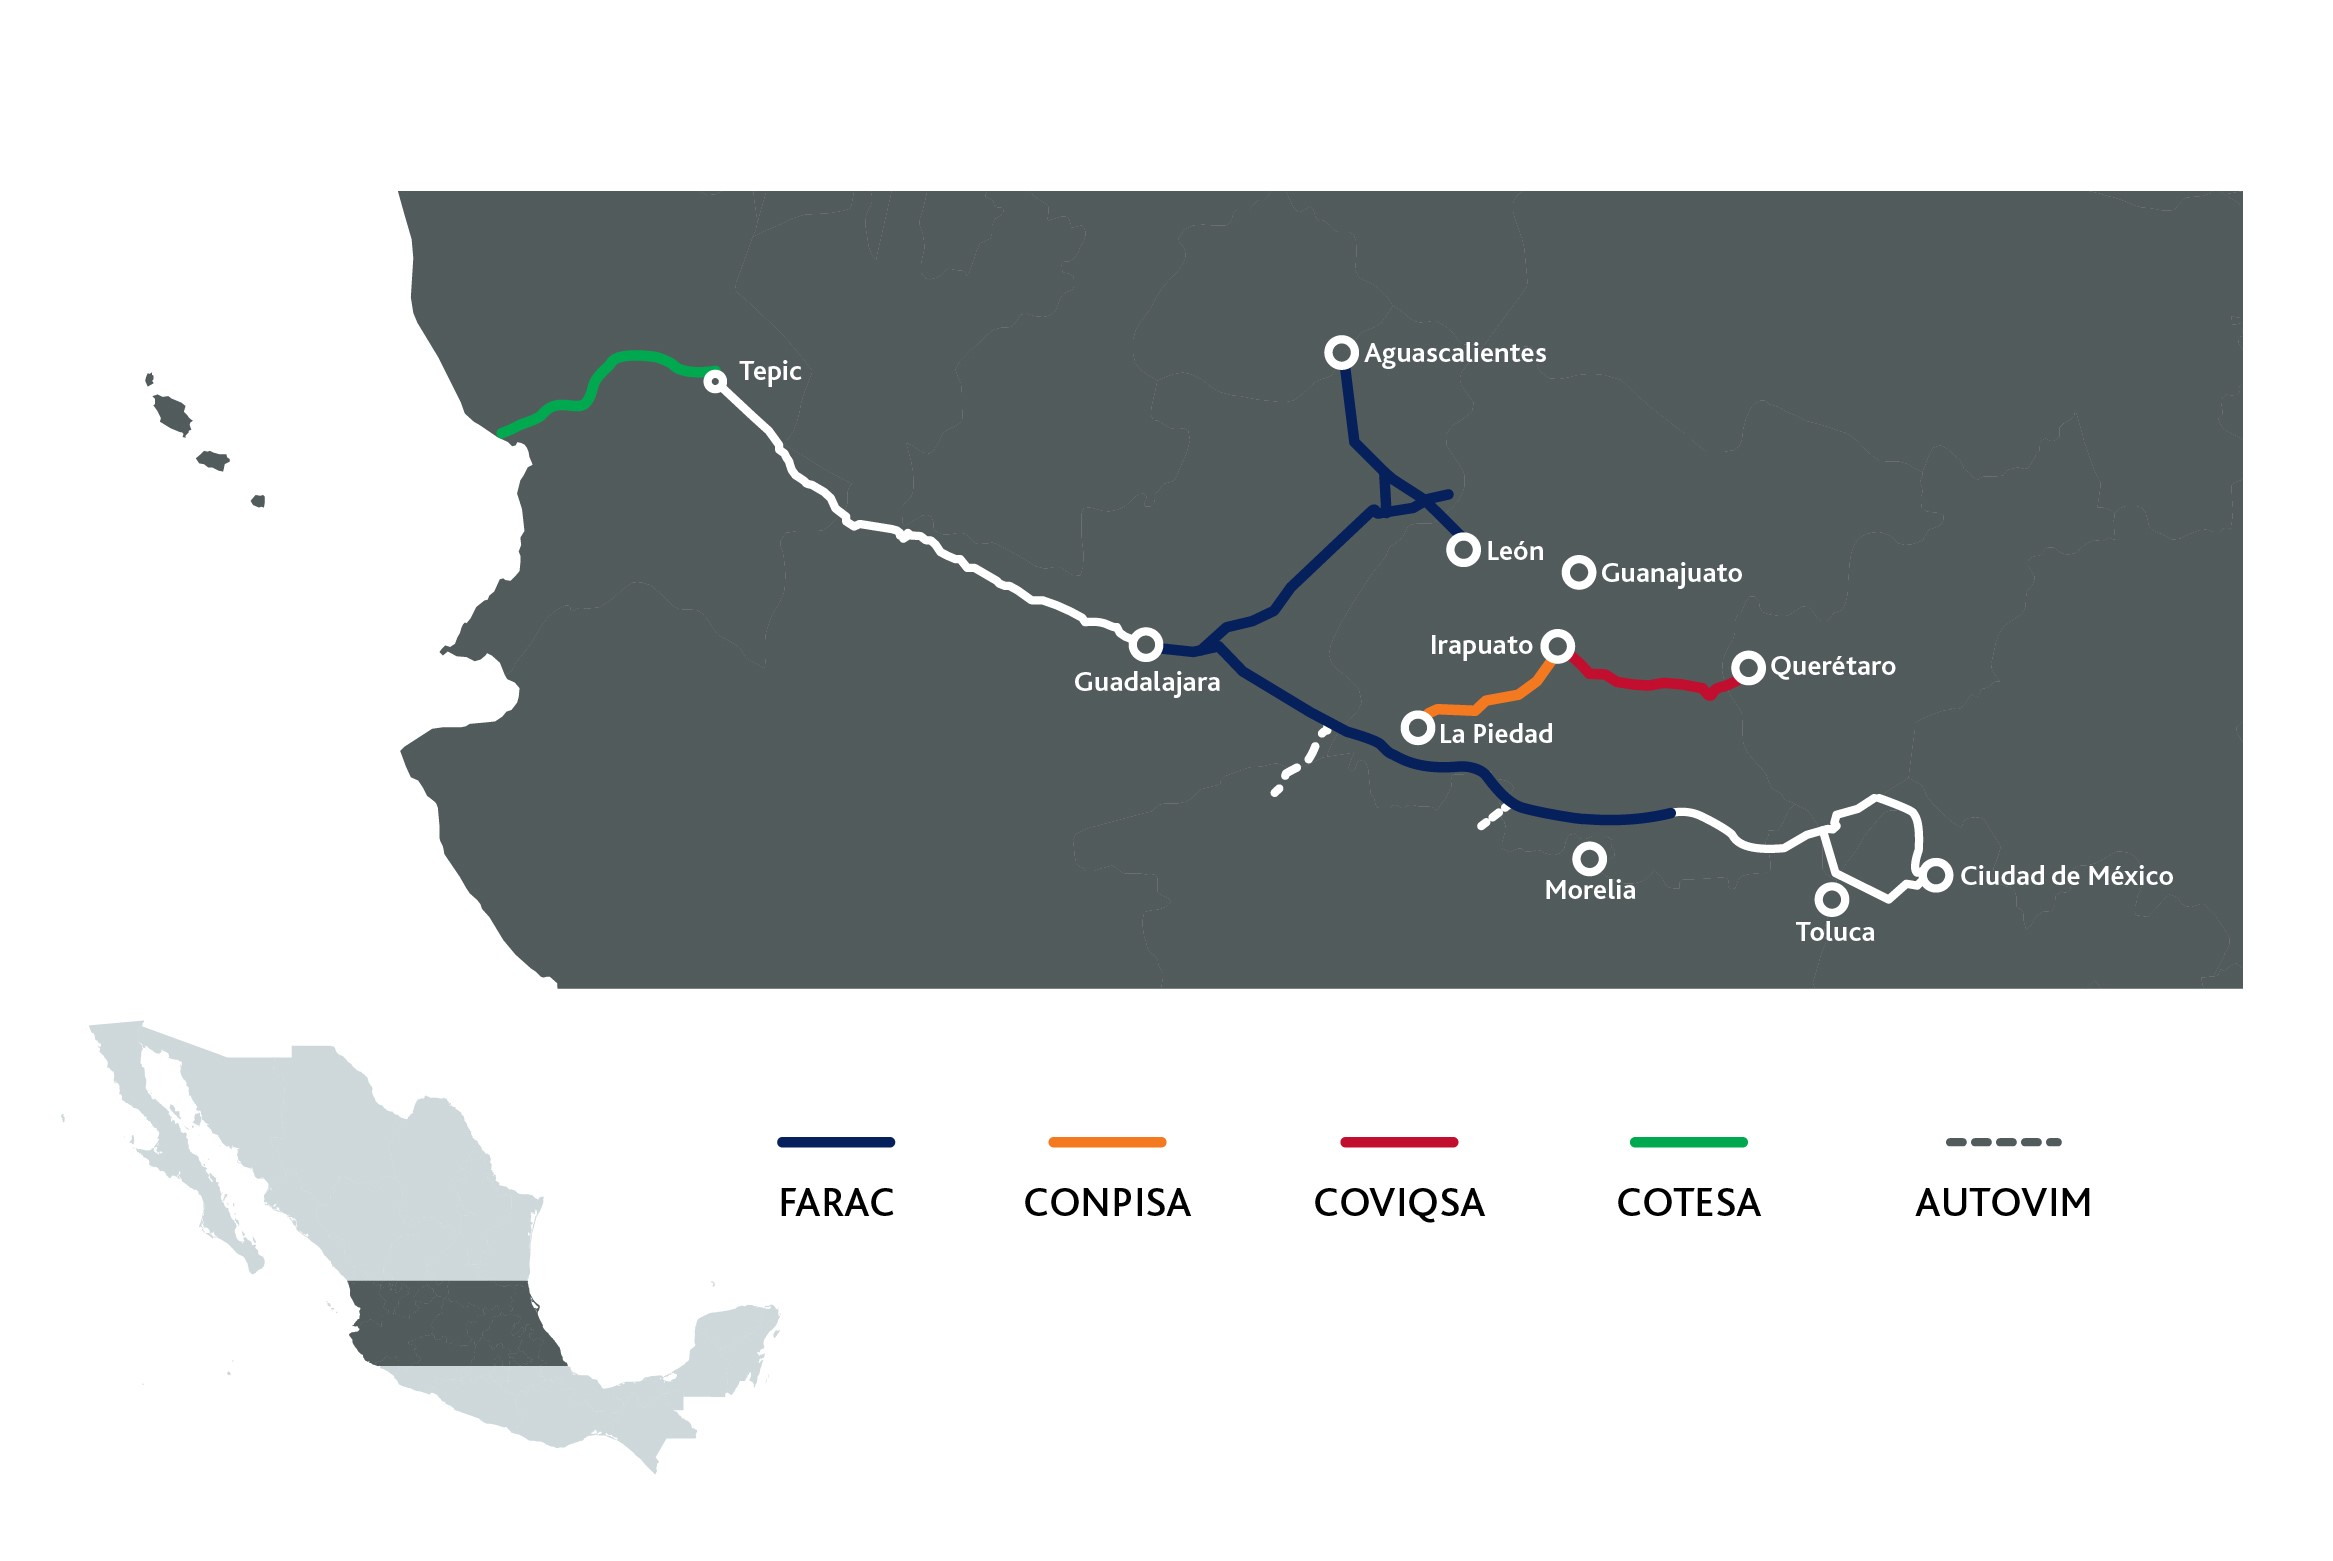 Abertis and GIC reach an agreement to acquire Red de Carreteras de Occidente (RCO) in Mexico